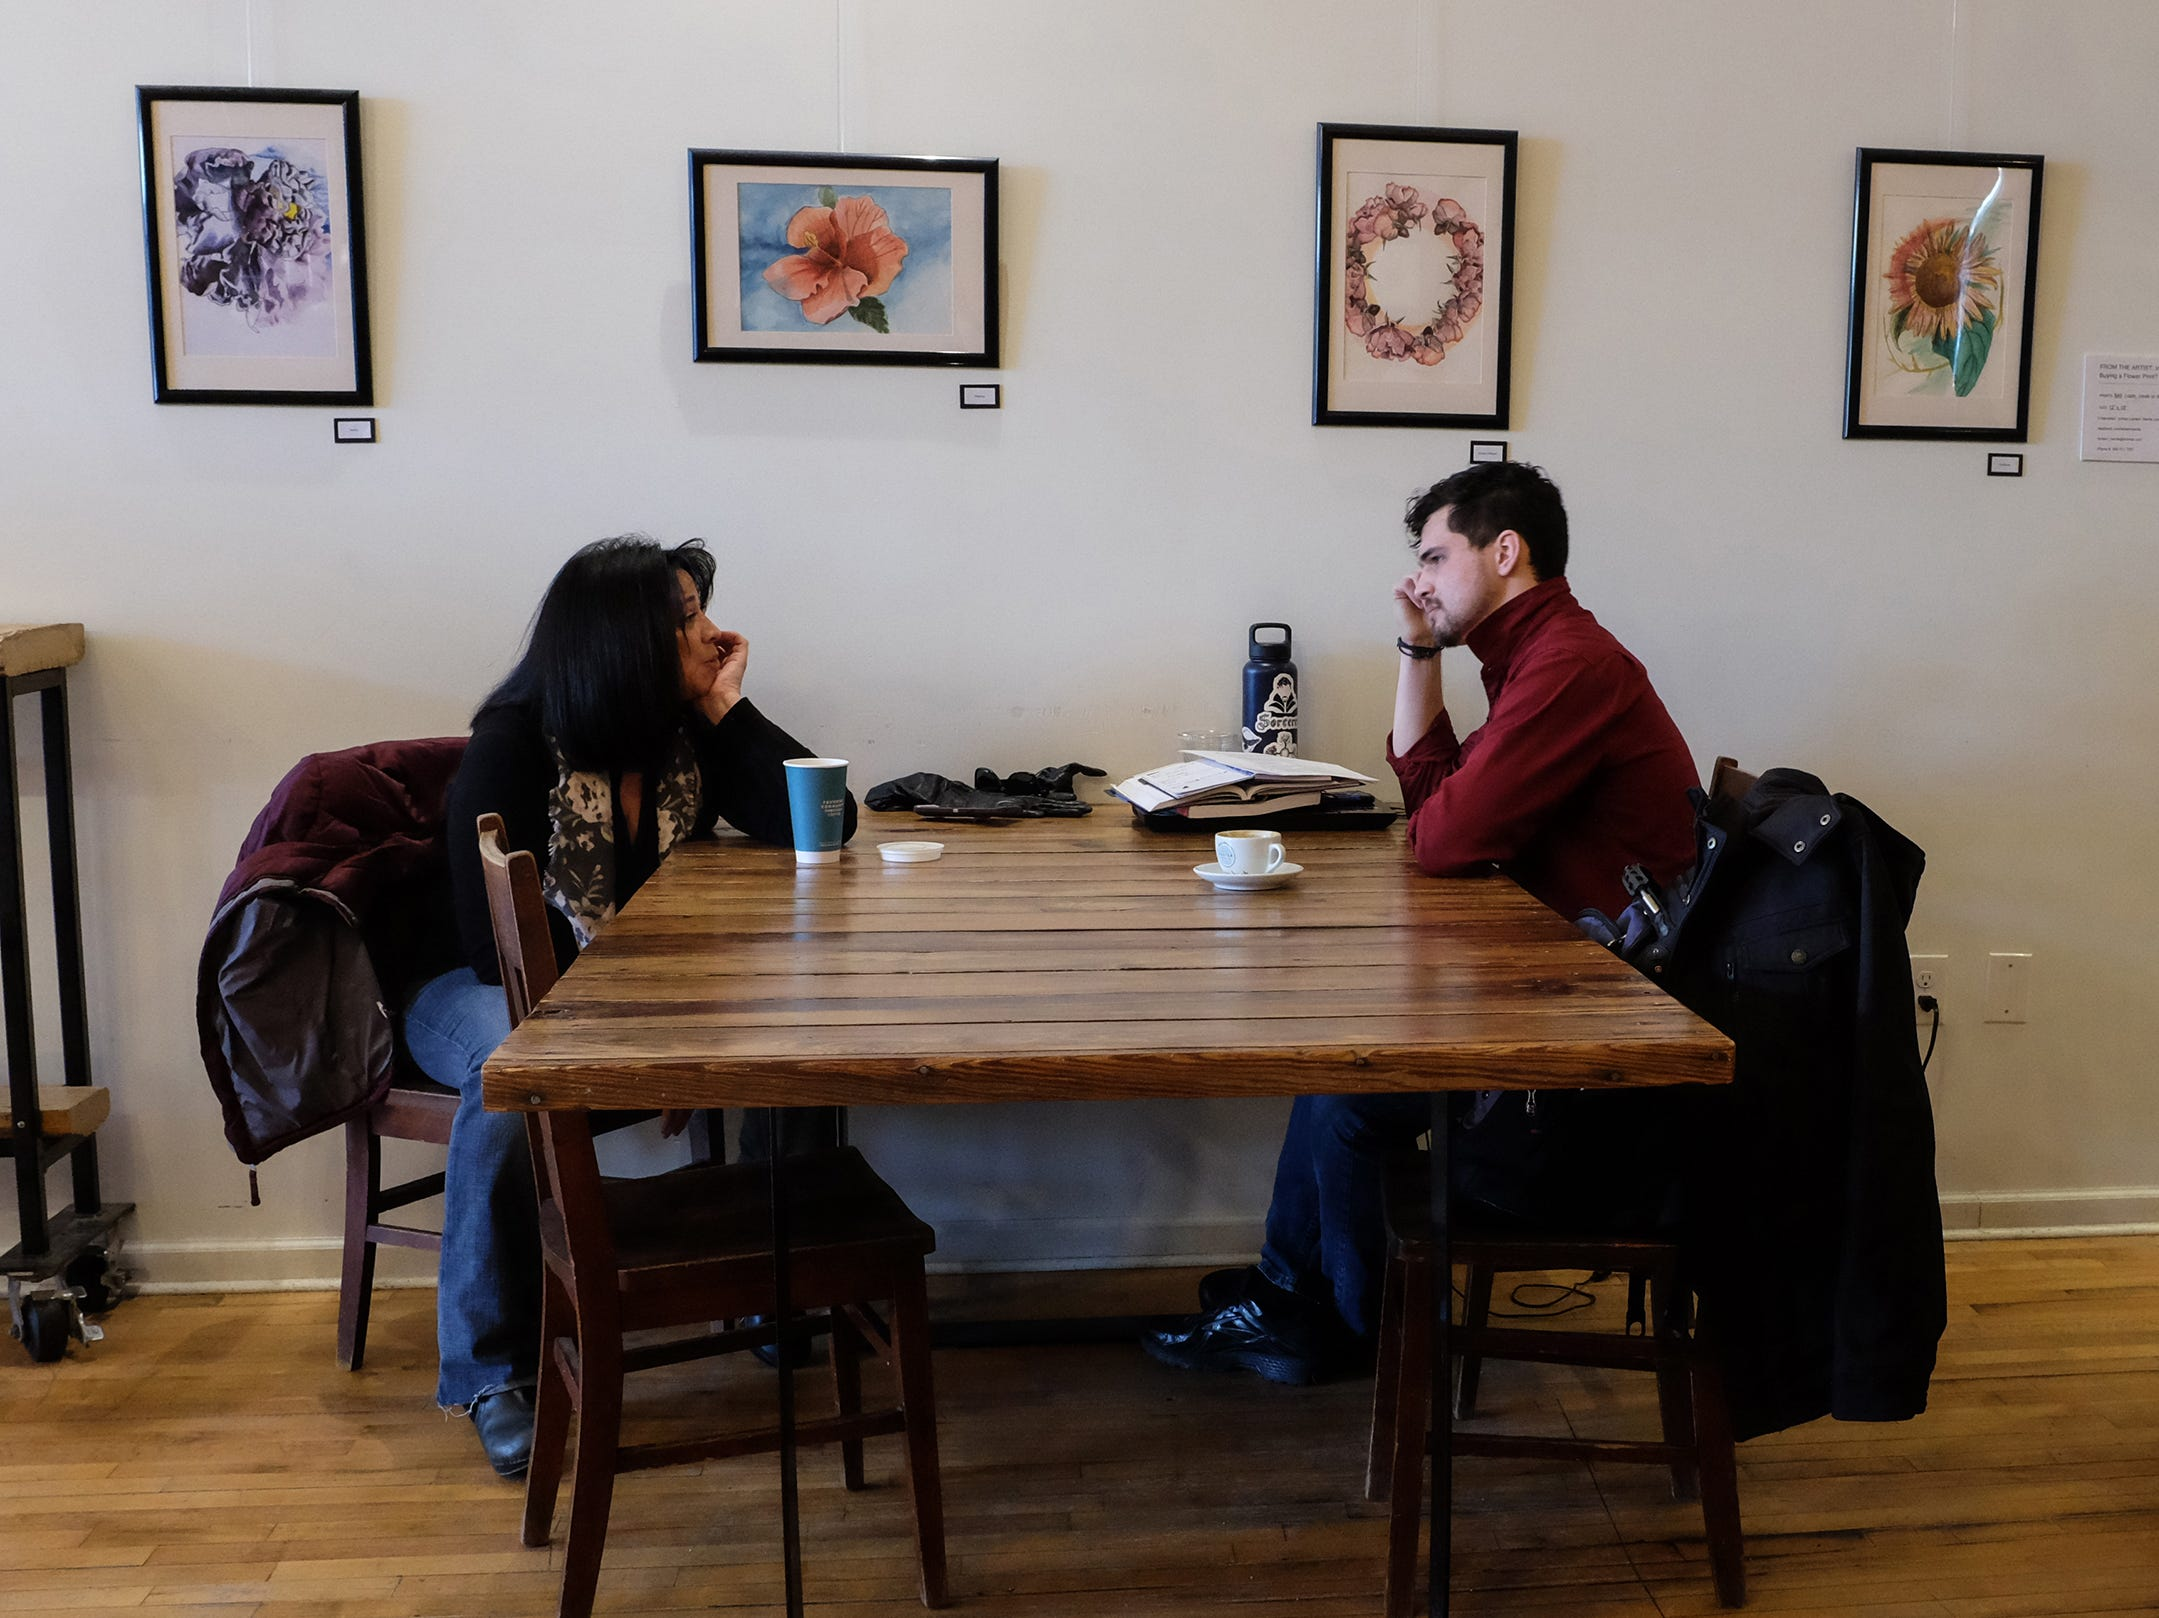 Like most coffee shops, a conversation area can be found.